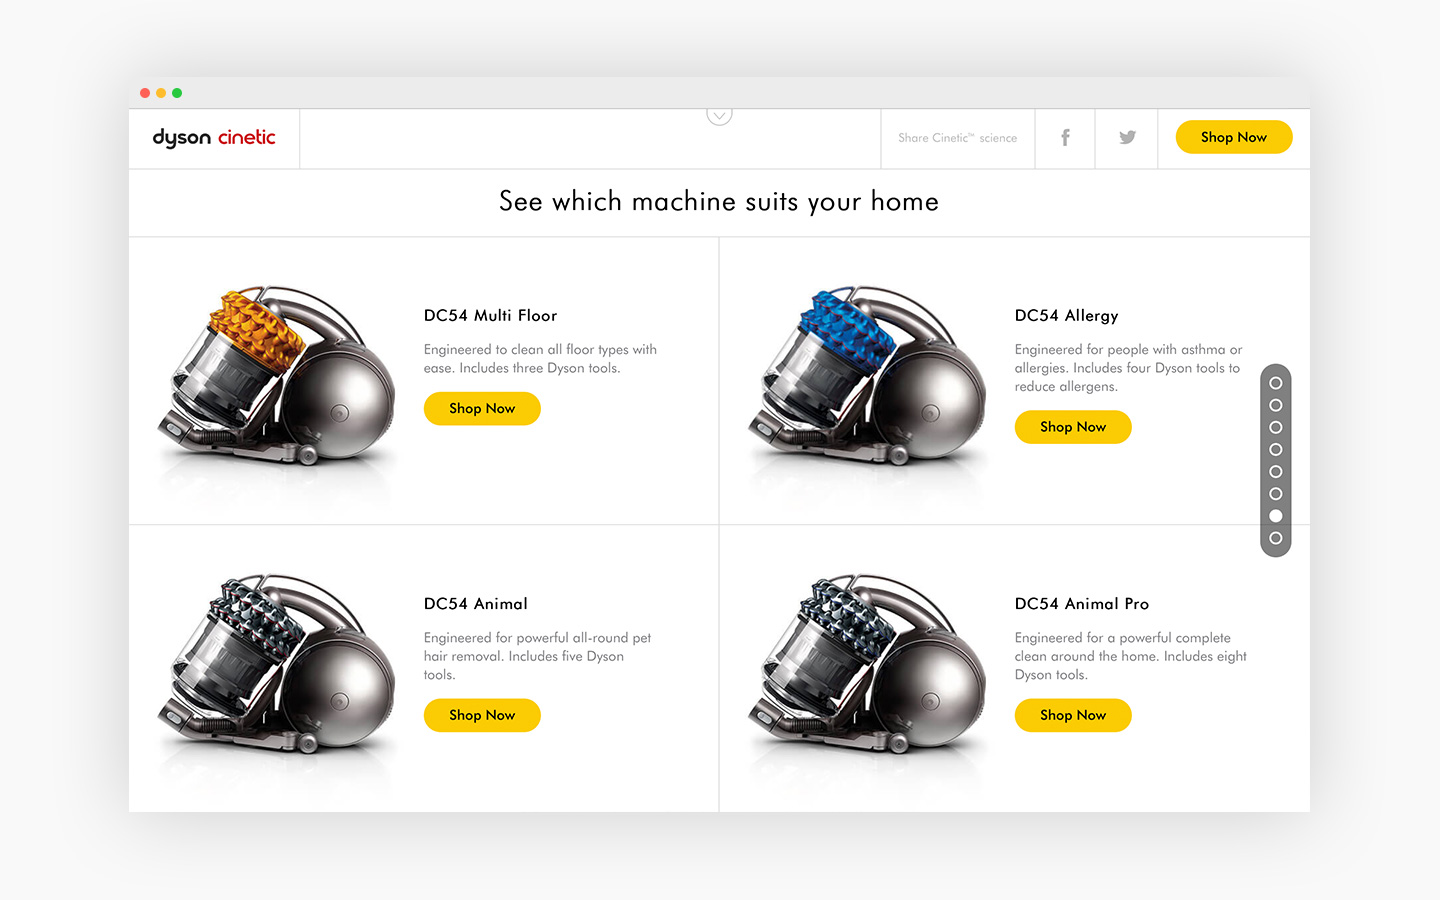 Nectar-&-Co_Dyson-Cinetic-homepage-webdesign-8.jpg